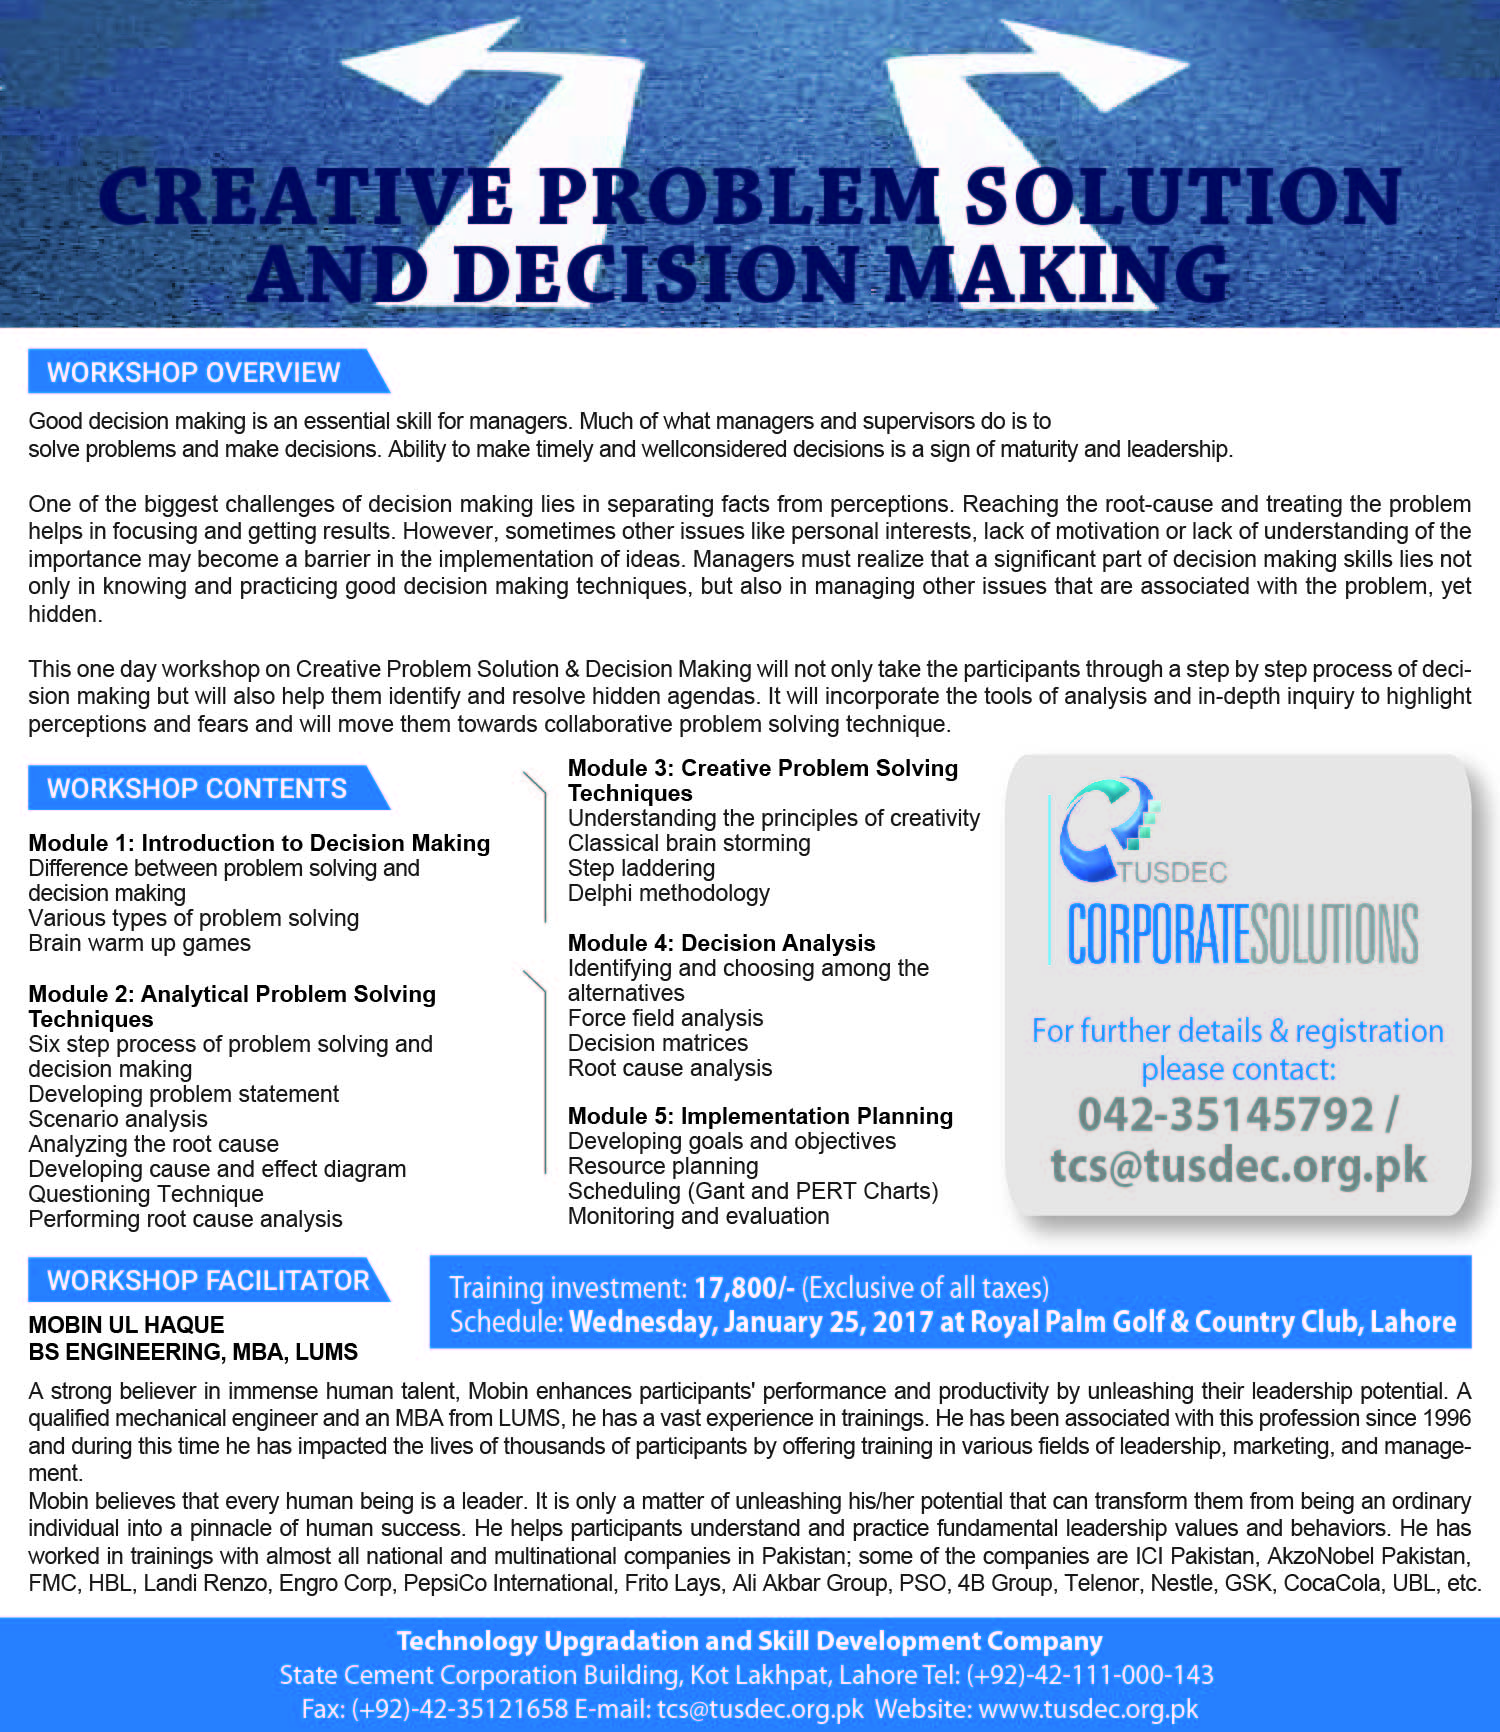 Creative Problem Solution and Decision Making - FINAL